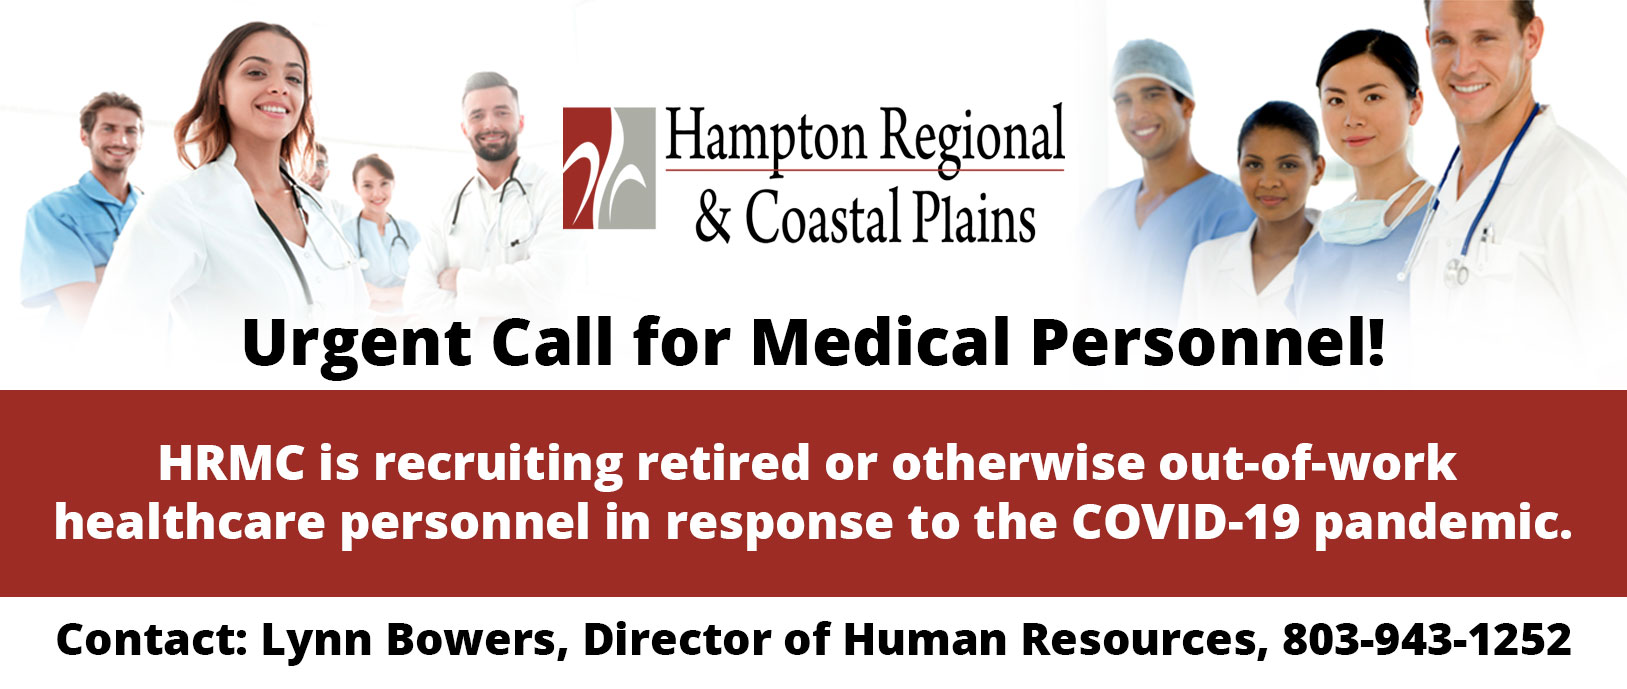 Urgent Call for Medical Personnel!  HRMC is recruiting retired or otherwise out-of-work healthcare personnel in response to the COVID-19 pandemic.  Contact: Lynn Bowers, Director of Human Resources, 803-943-1252